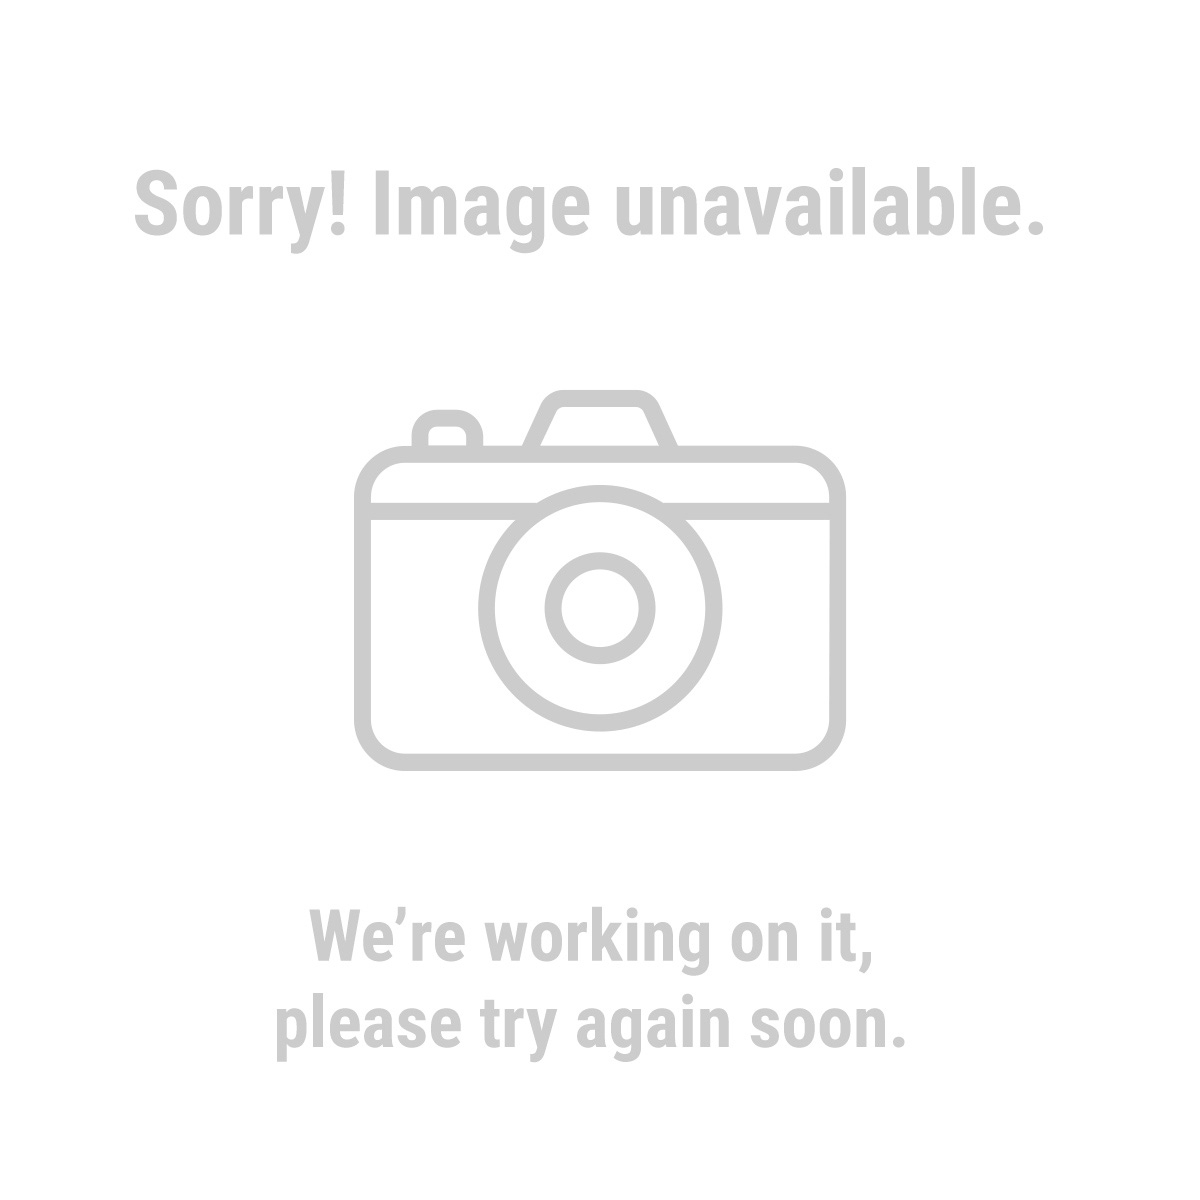 Western Safety 68307 Mechanics Gloves, Medium